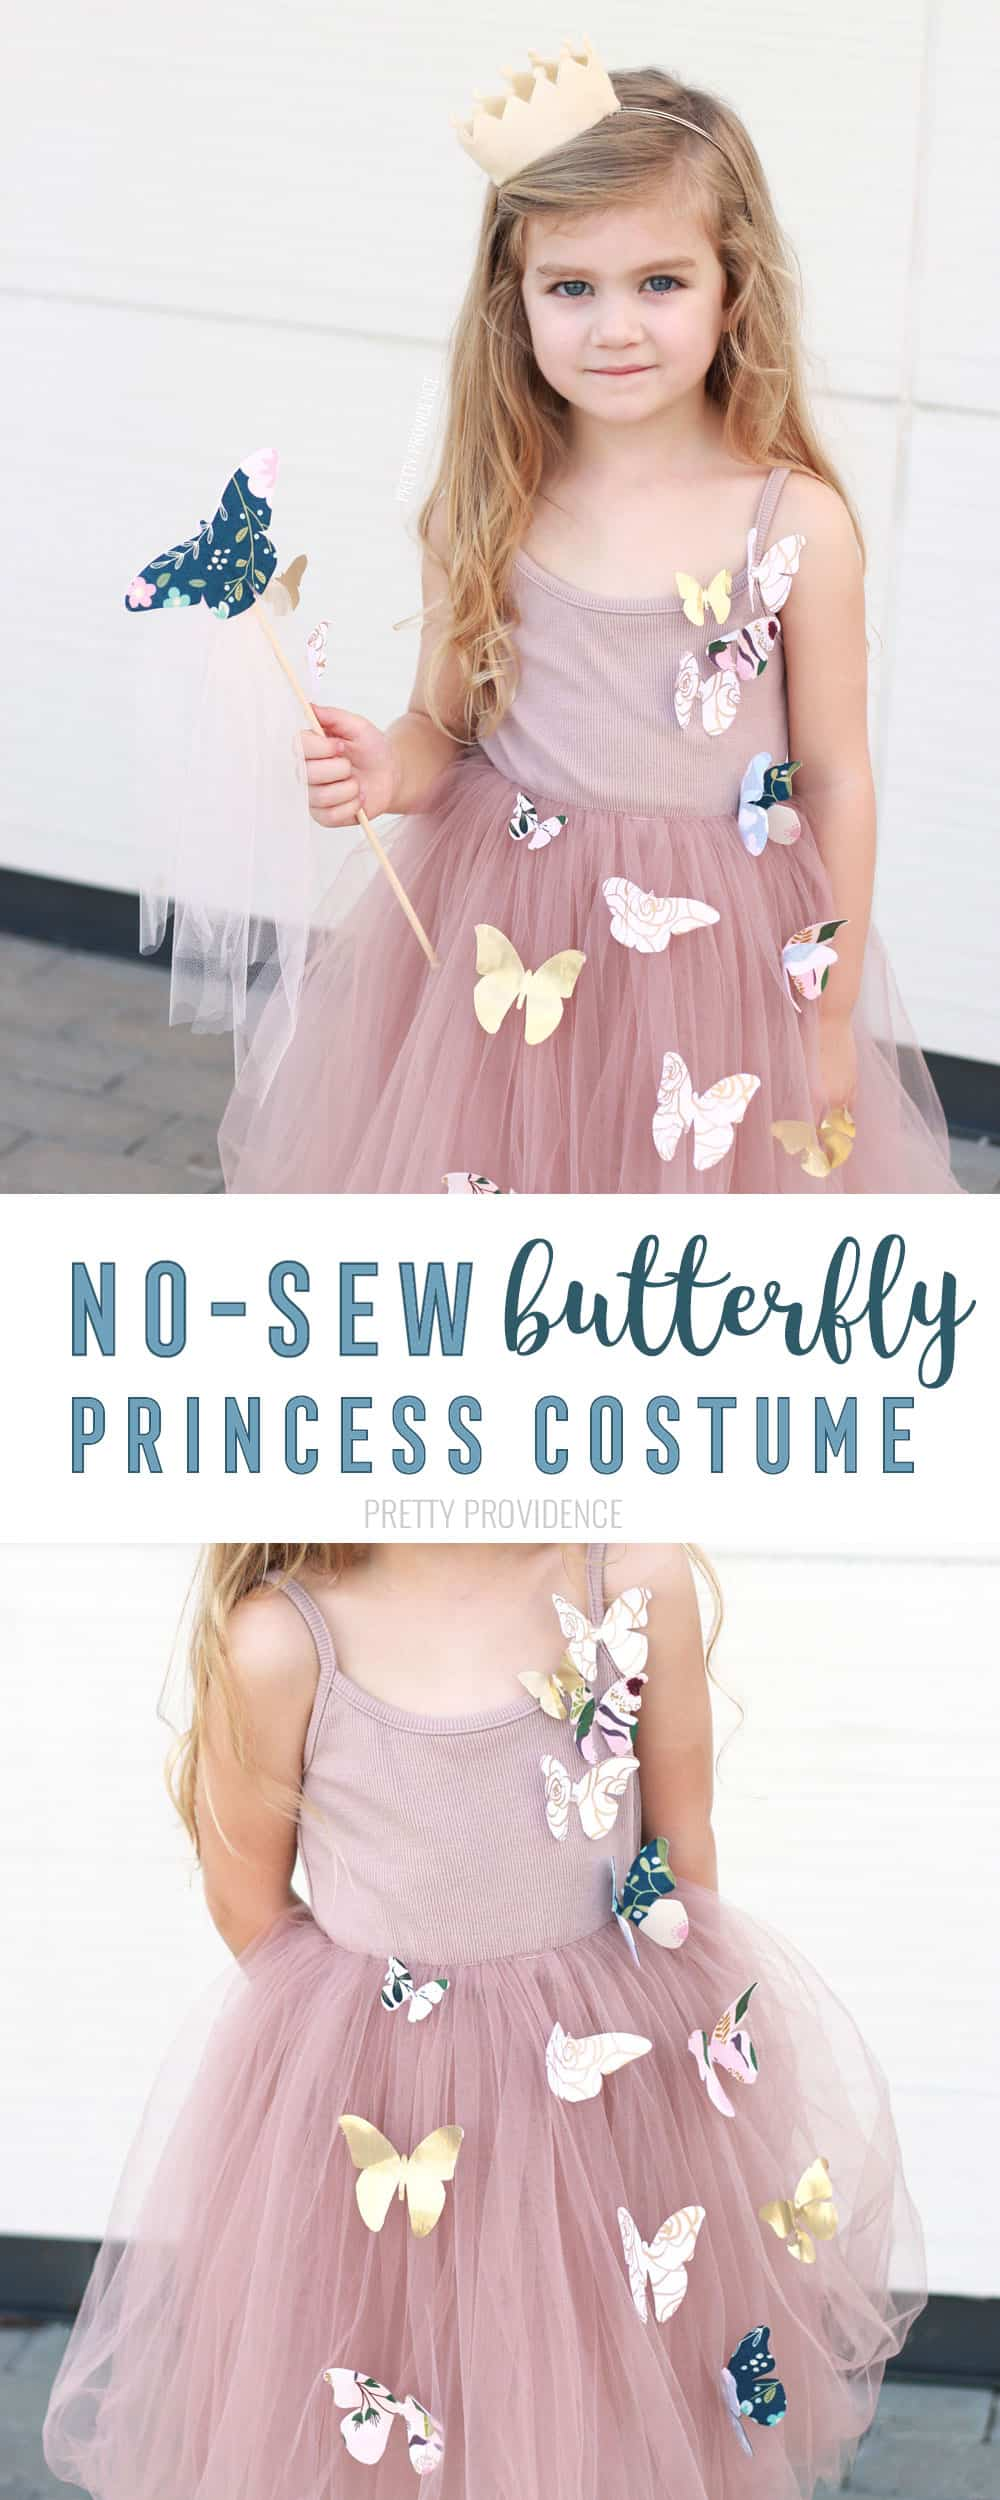 DIY Butterfly Princess Costume! No Sew Princess Costumes for Halloween or Princess Camp!